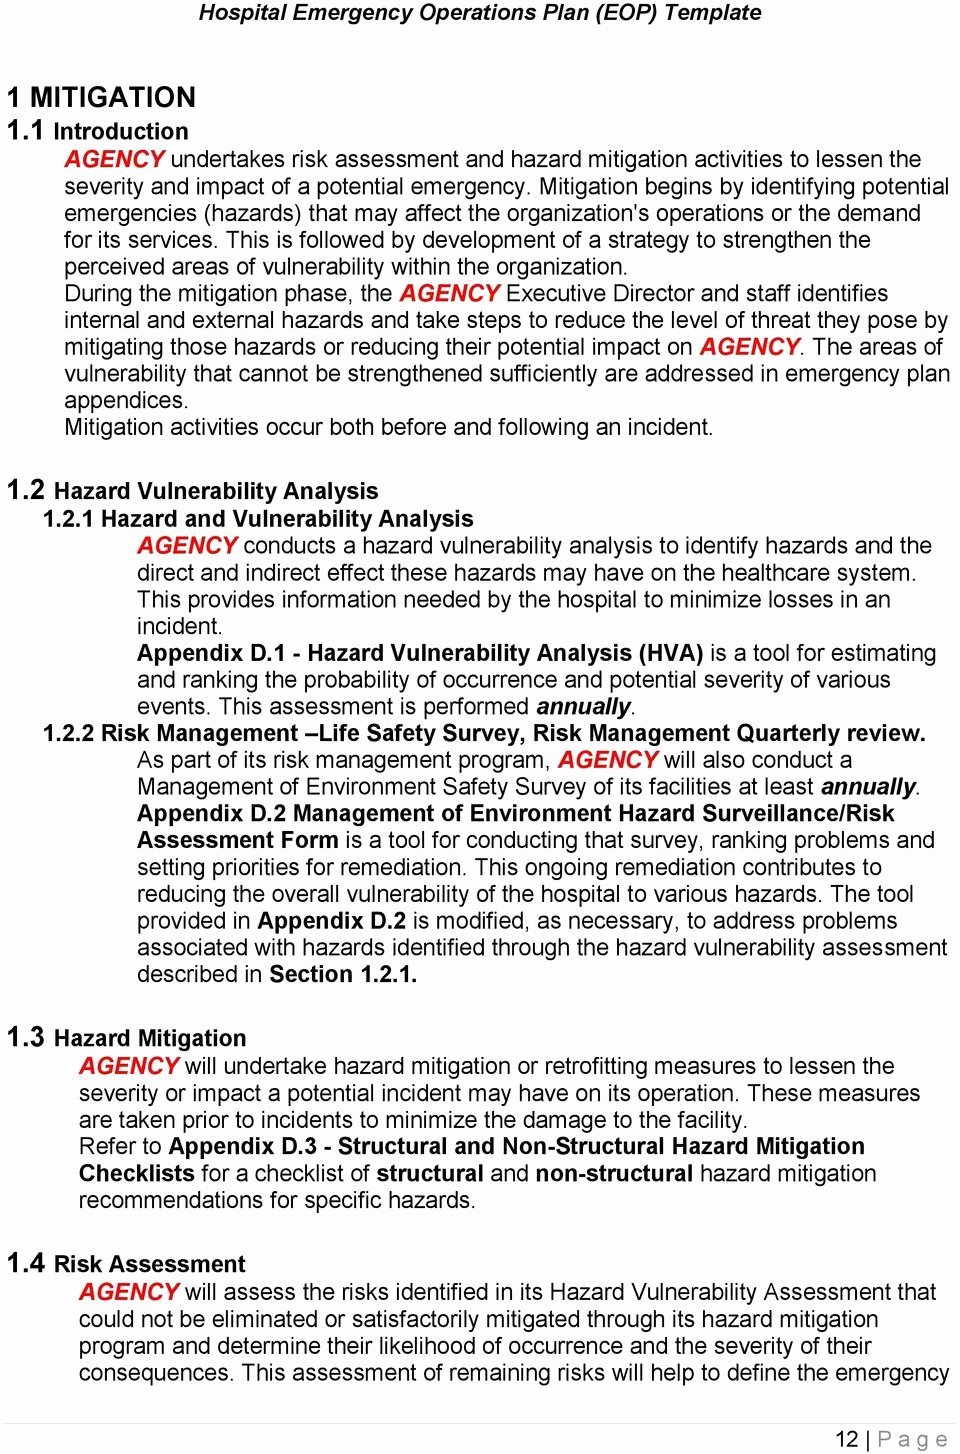 Emergency Operations Plan Template Lovely Hospital Emergency Operations Plan Eop Template Pdf